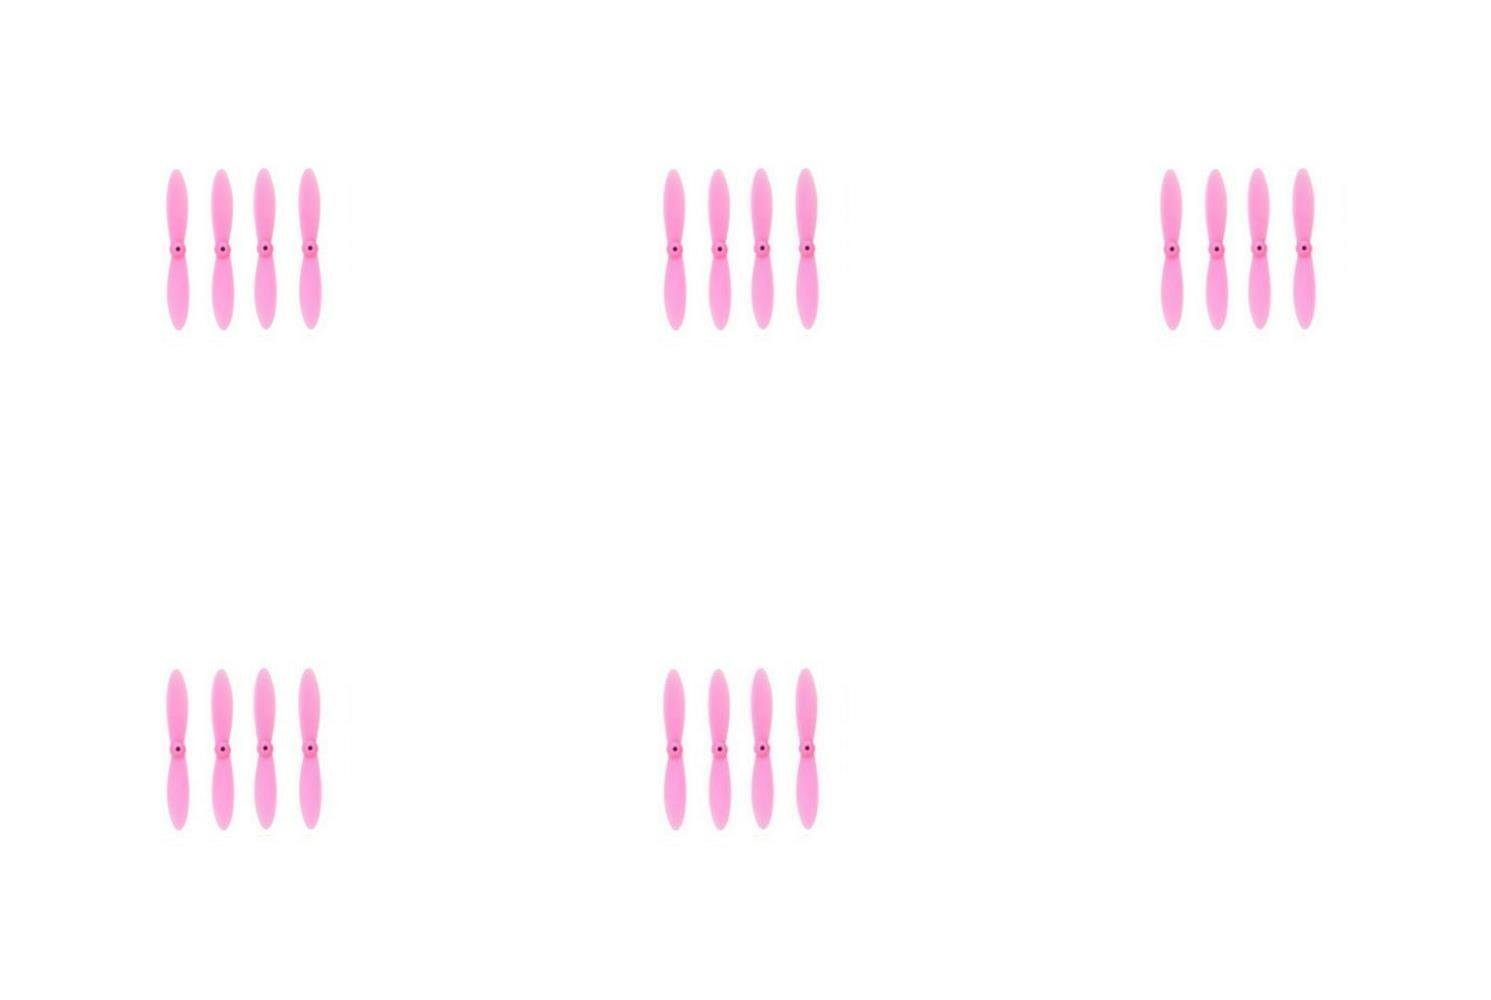 5 x Quantity of WLtoys V272 All Pink Nano Quadcopter Propeller blade Set 32mm Propellers Blades Props Quad Drone parts - FAST FROM Orlando, Florida USA